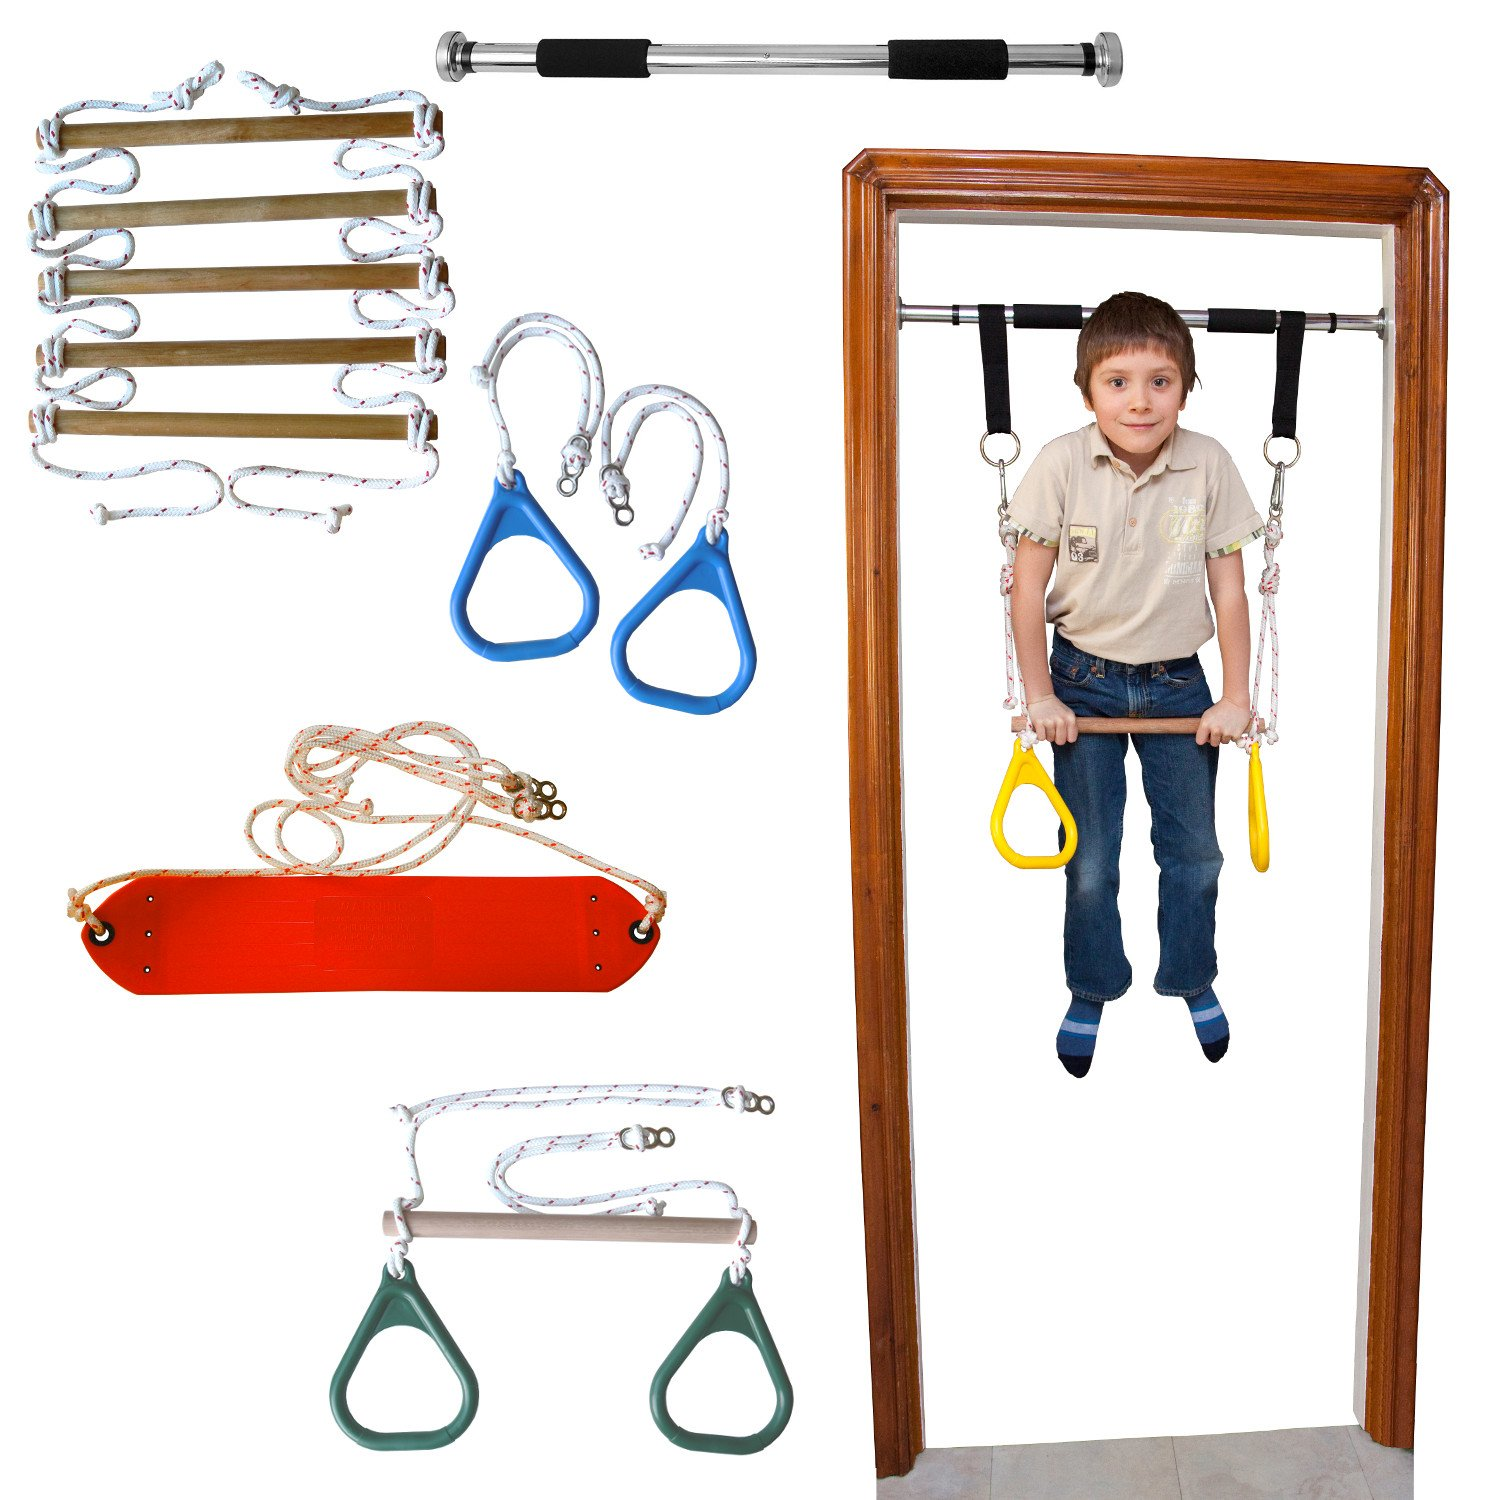 DreamGYM Doorway Gym And Indoor Swing For Children Includes Chin Up Bar,  Trapeze Bar U0026 Gym Rings Combo, Rope Ladder, Gymnastics Rings And Rope Swing  By ...